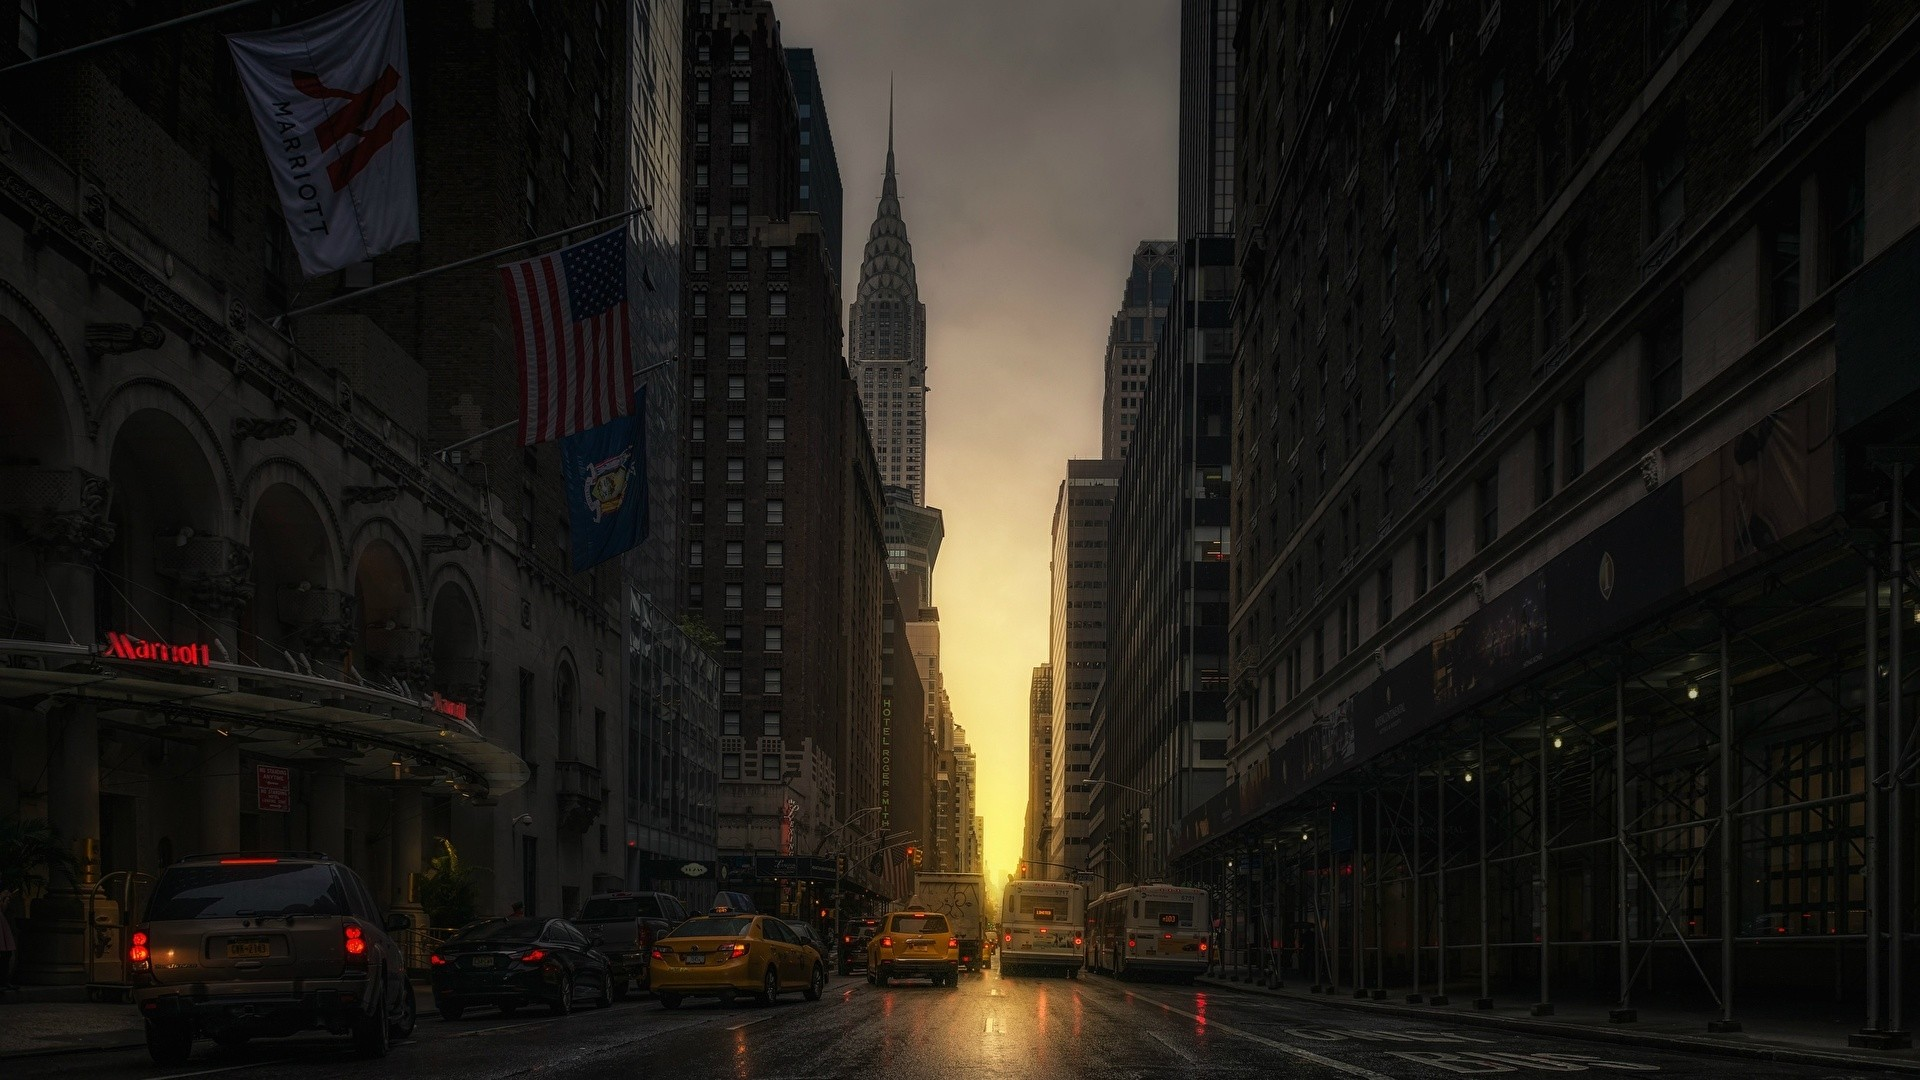 New York Street Wallpaper and Background